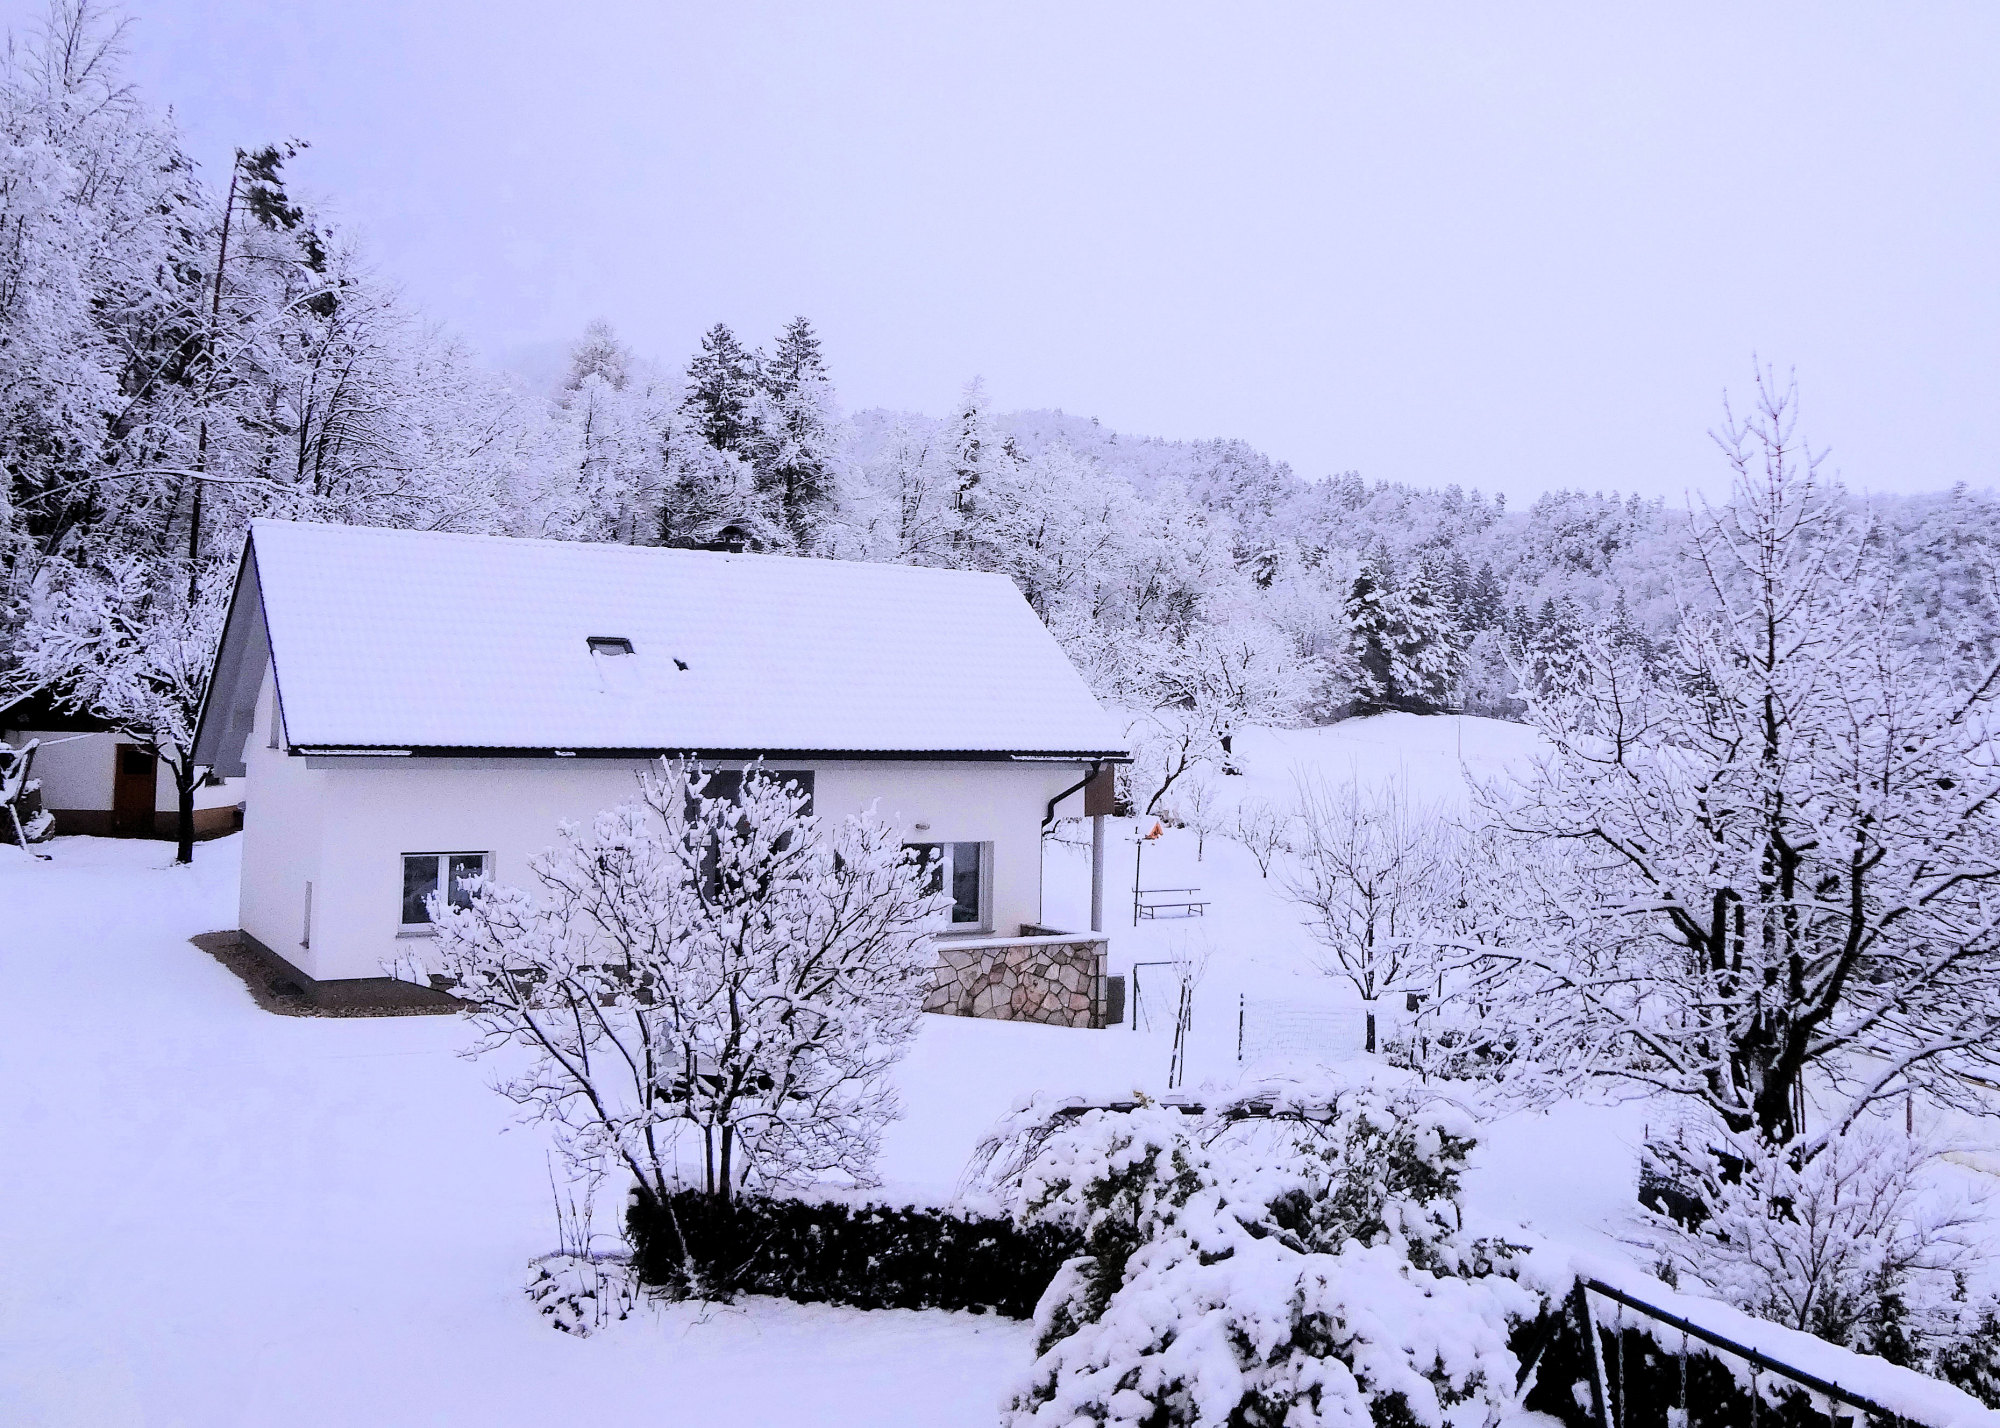 Apartments Fine Stay in the Gorenjska region of Slovenia in winter with snow